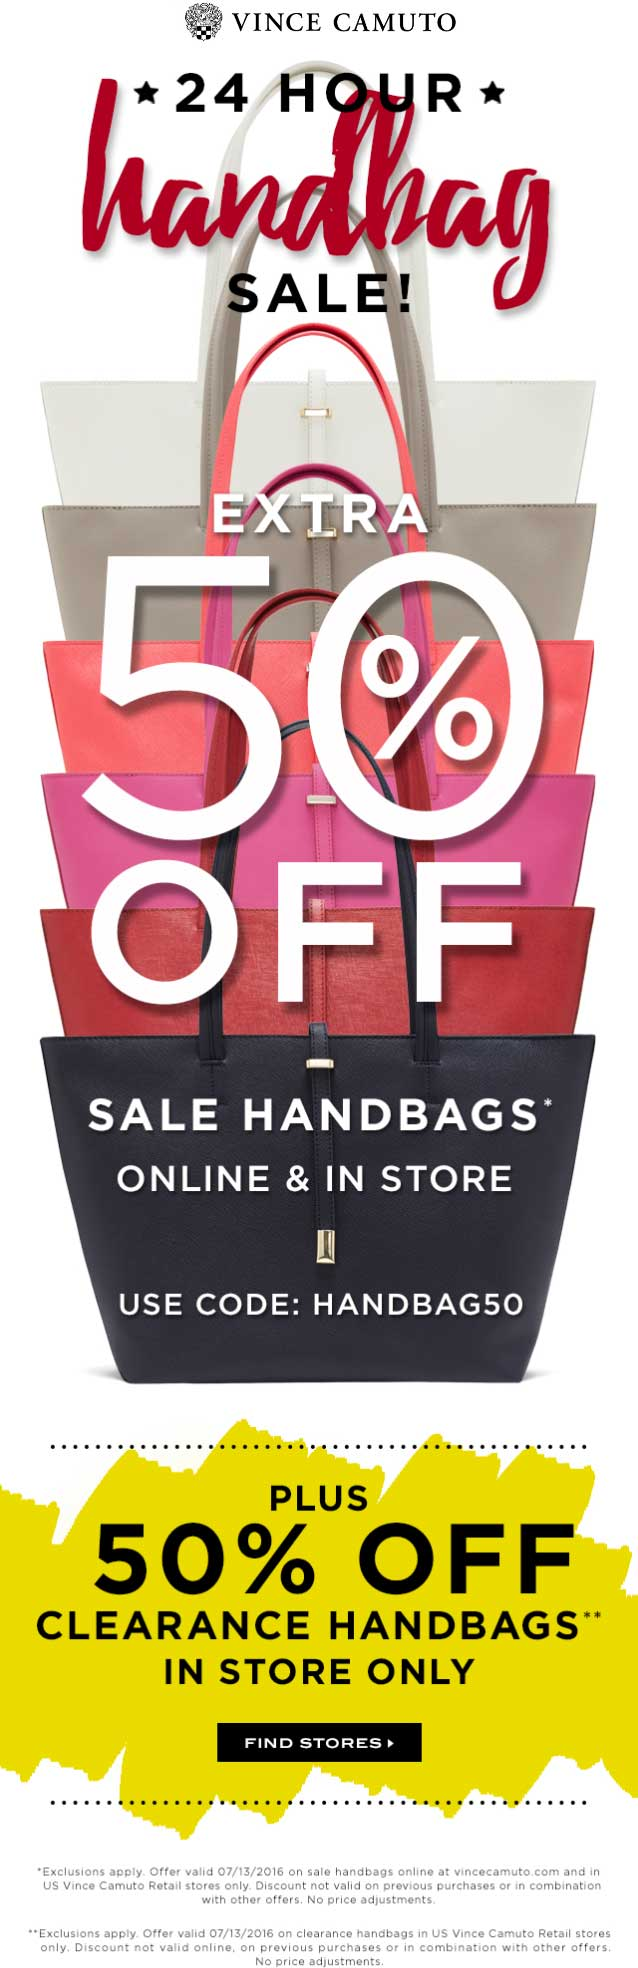 Vince Camuto Coupon August 2017 Extra 50% off sale handbags today at Vince Camuto, or online via promo code HANDBAG50